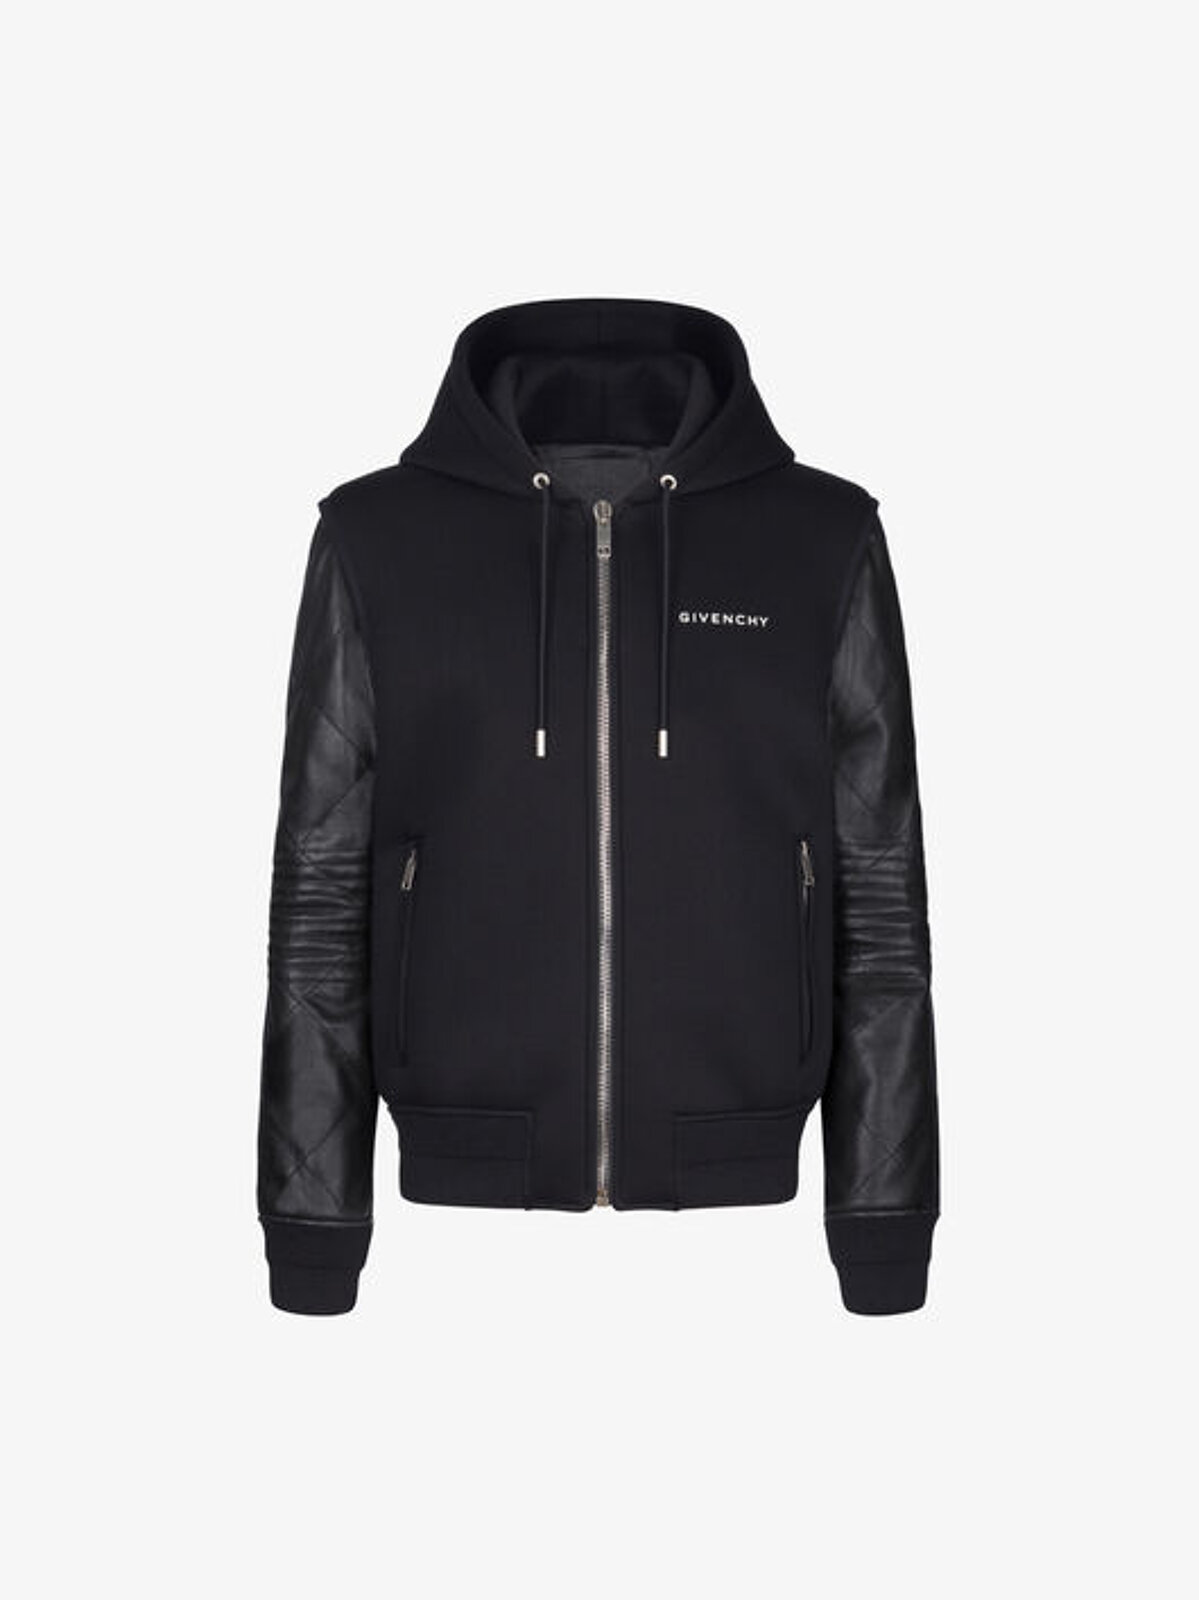 Neoprene and leather jacket - Givenchy